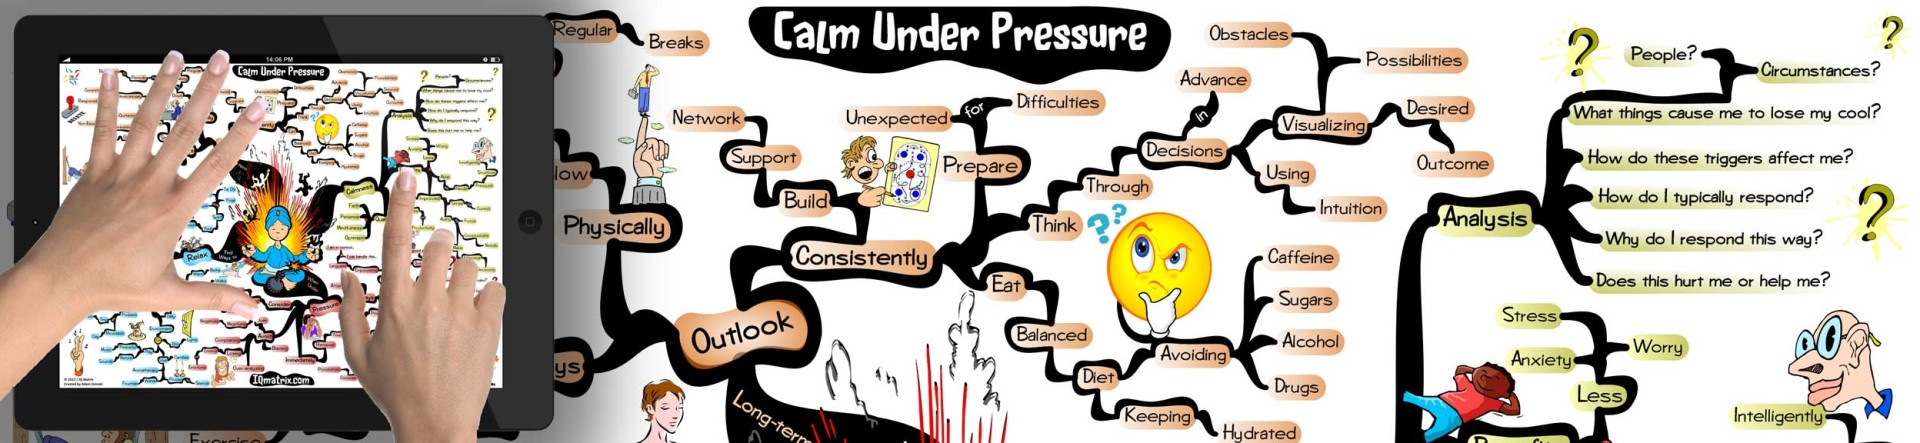 Why can't I concentrate if I'm not under pressure?